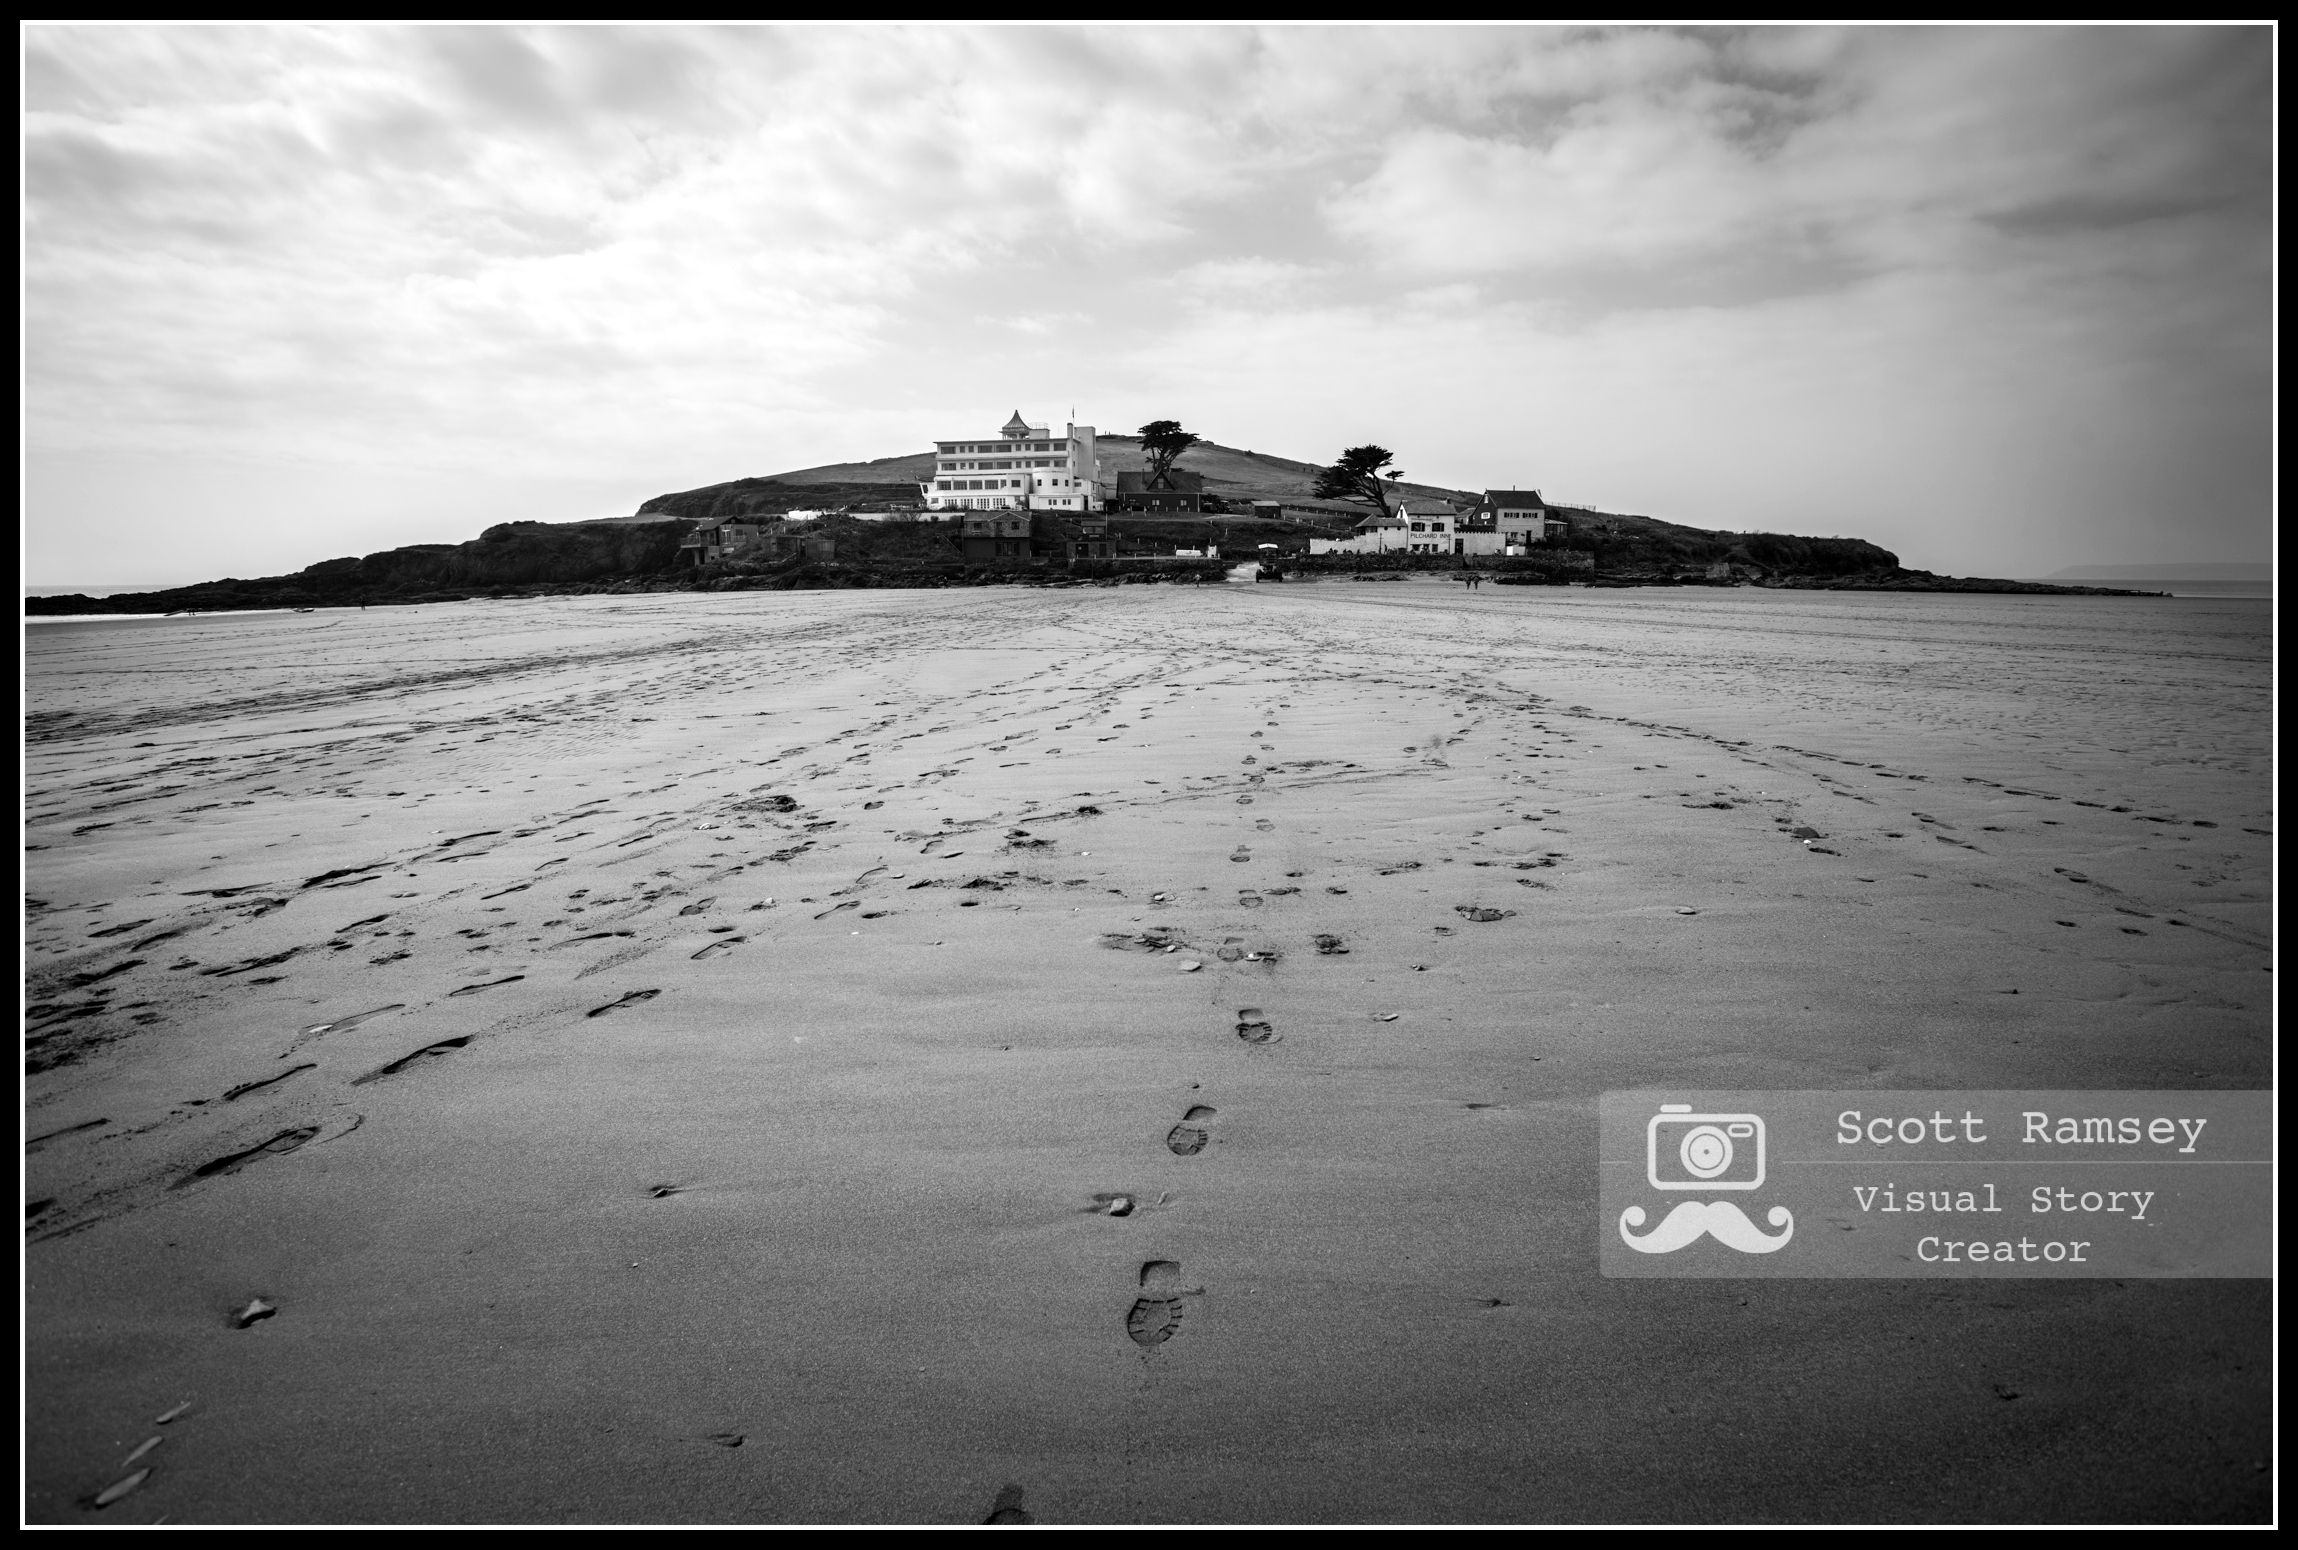 Burgh Island at low tide in Devon, England.  Photo © Scott Ramsey. Early records show the name of the island to be St Michael's Island and also Borough Island but these days people know it as Burgh Island. The island inspired the English writer, Agatha Christie , who used it as inspiration for Soldier Island in her mystery novel  And Then There Were None .